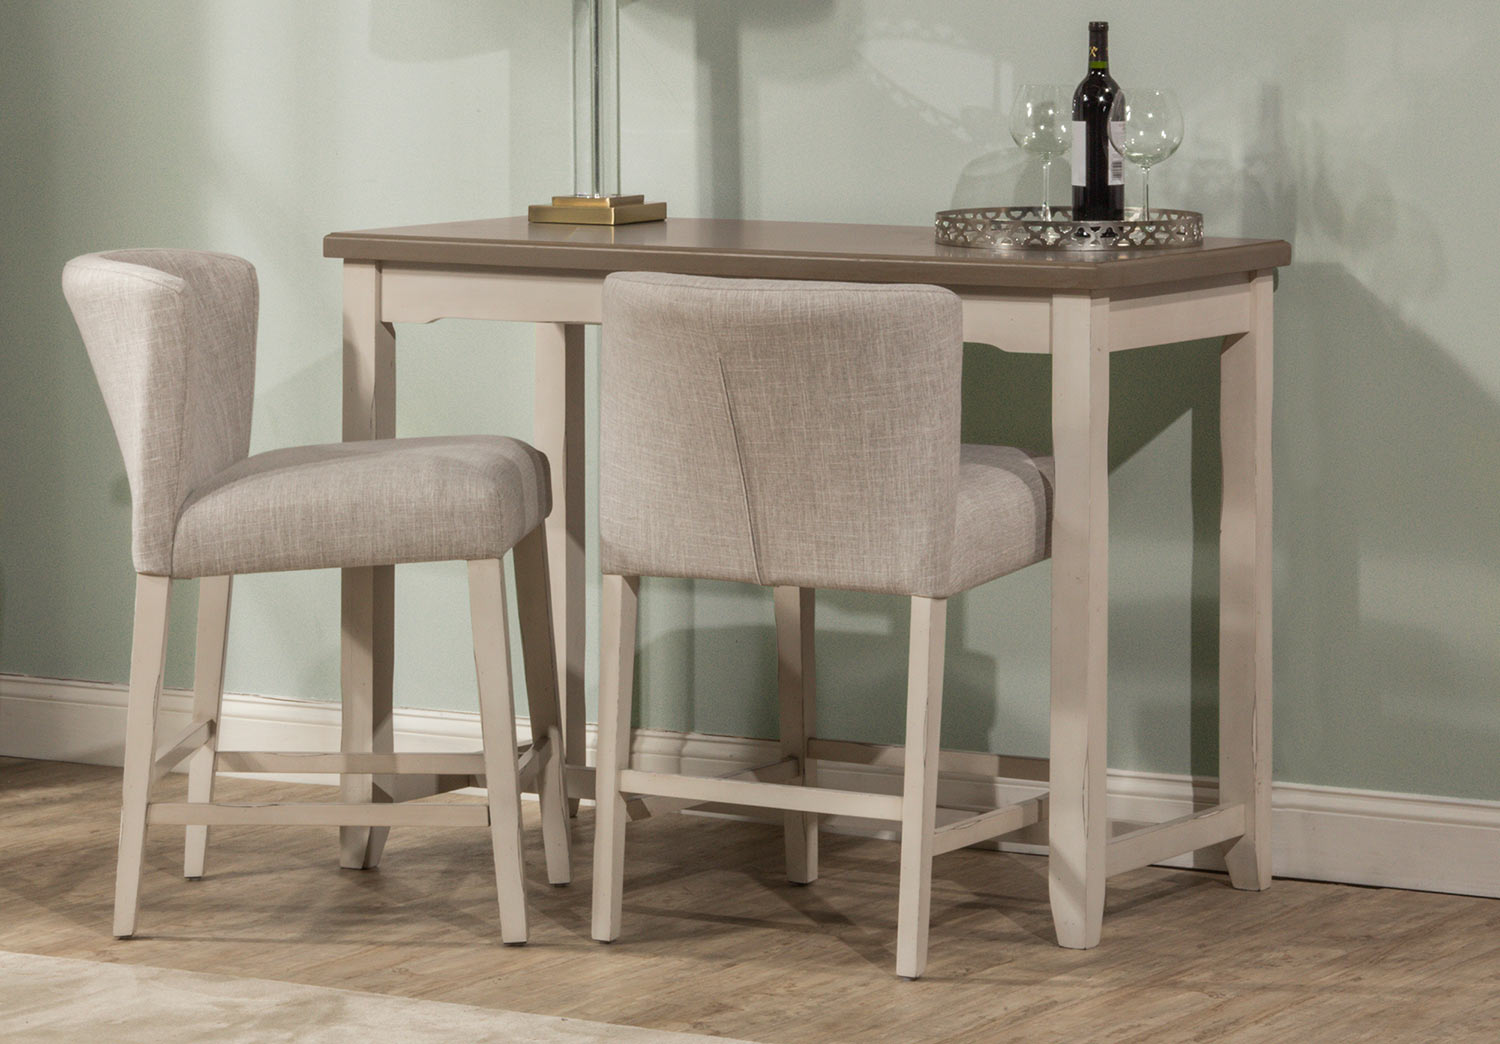 Hillsdale Clarion Counter Height Dining Set - Gray/White